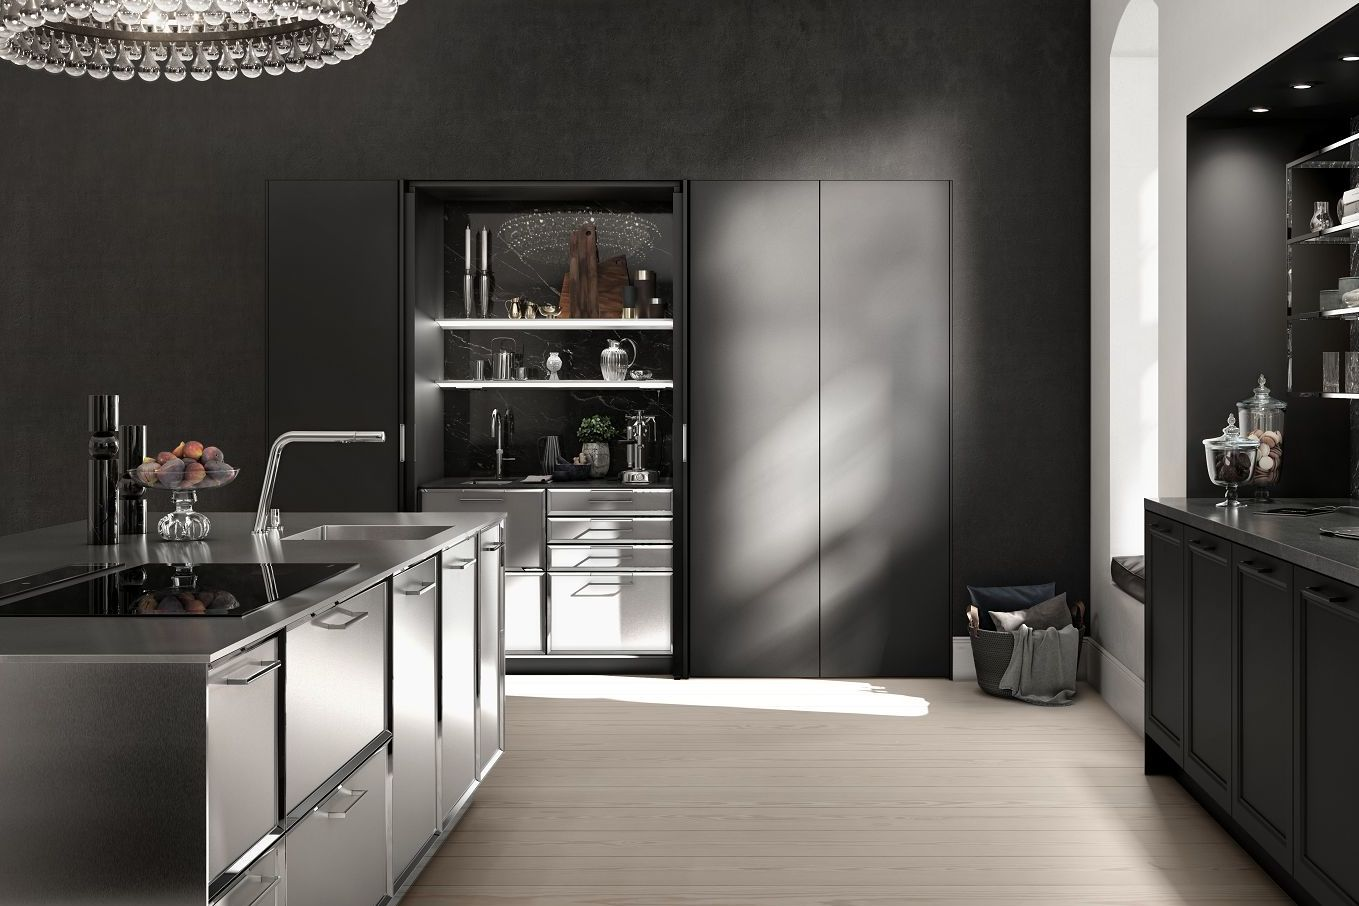 SieMatic Classic BeauxArts SE kitchen island with faceted door fronts and extensive stainless steel